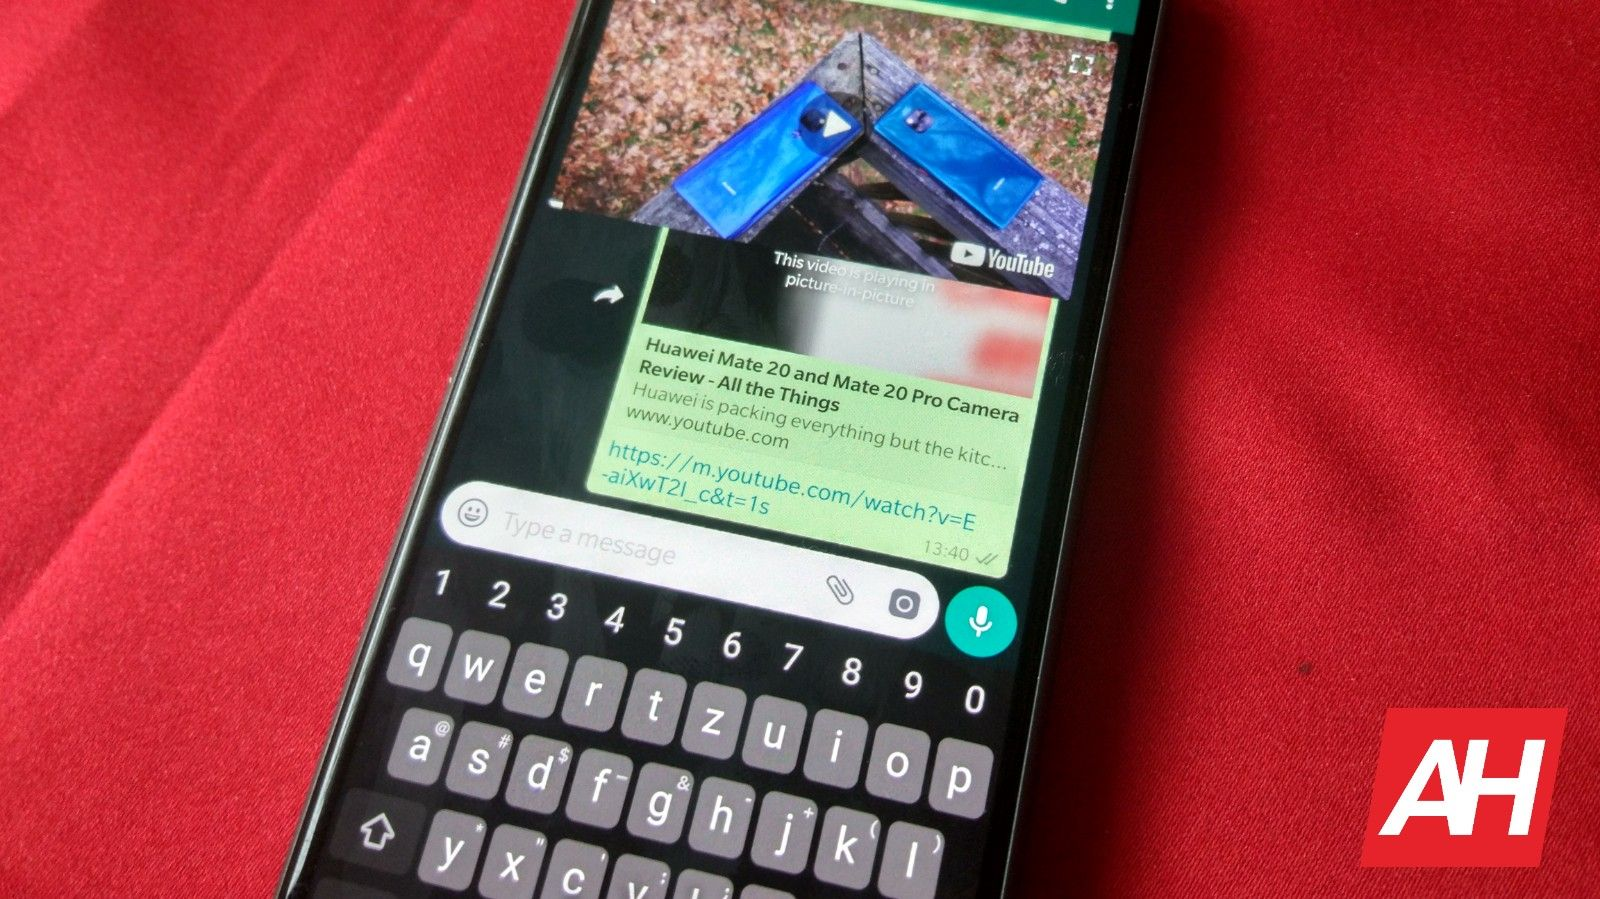 WhatsApp Gets Picture-In-Picture Mode For YouTube, Instagram